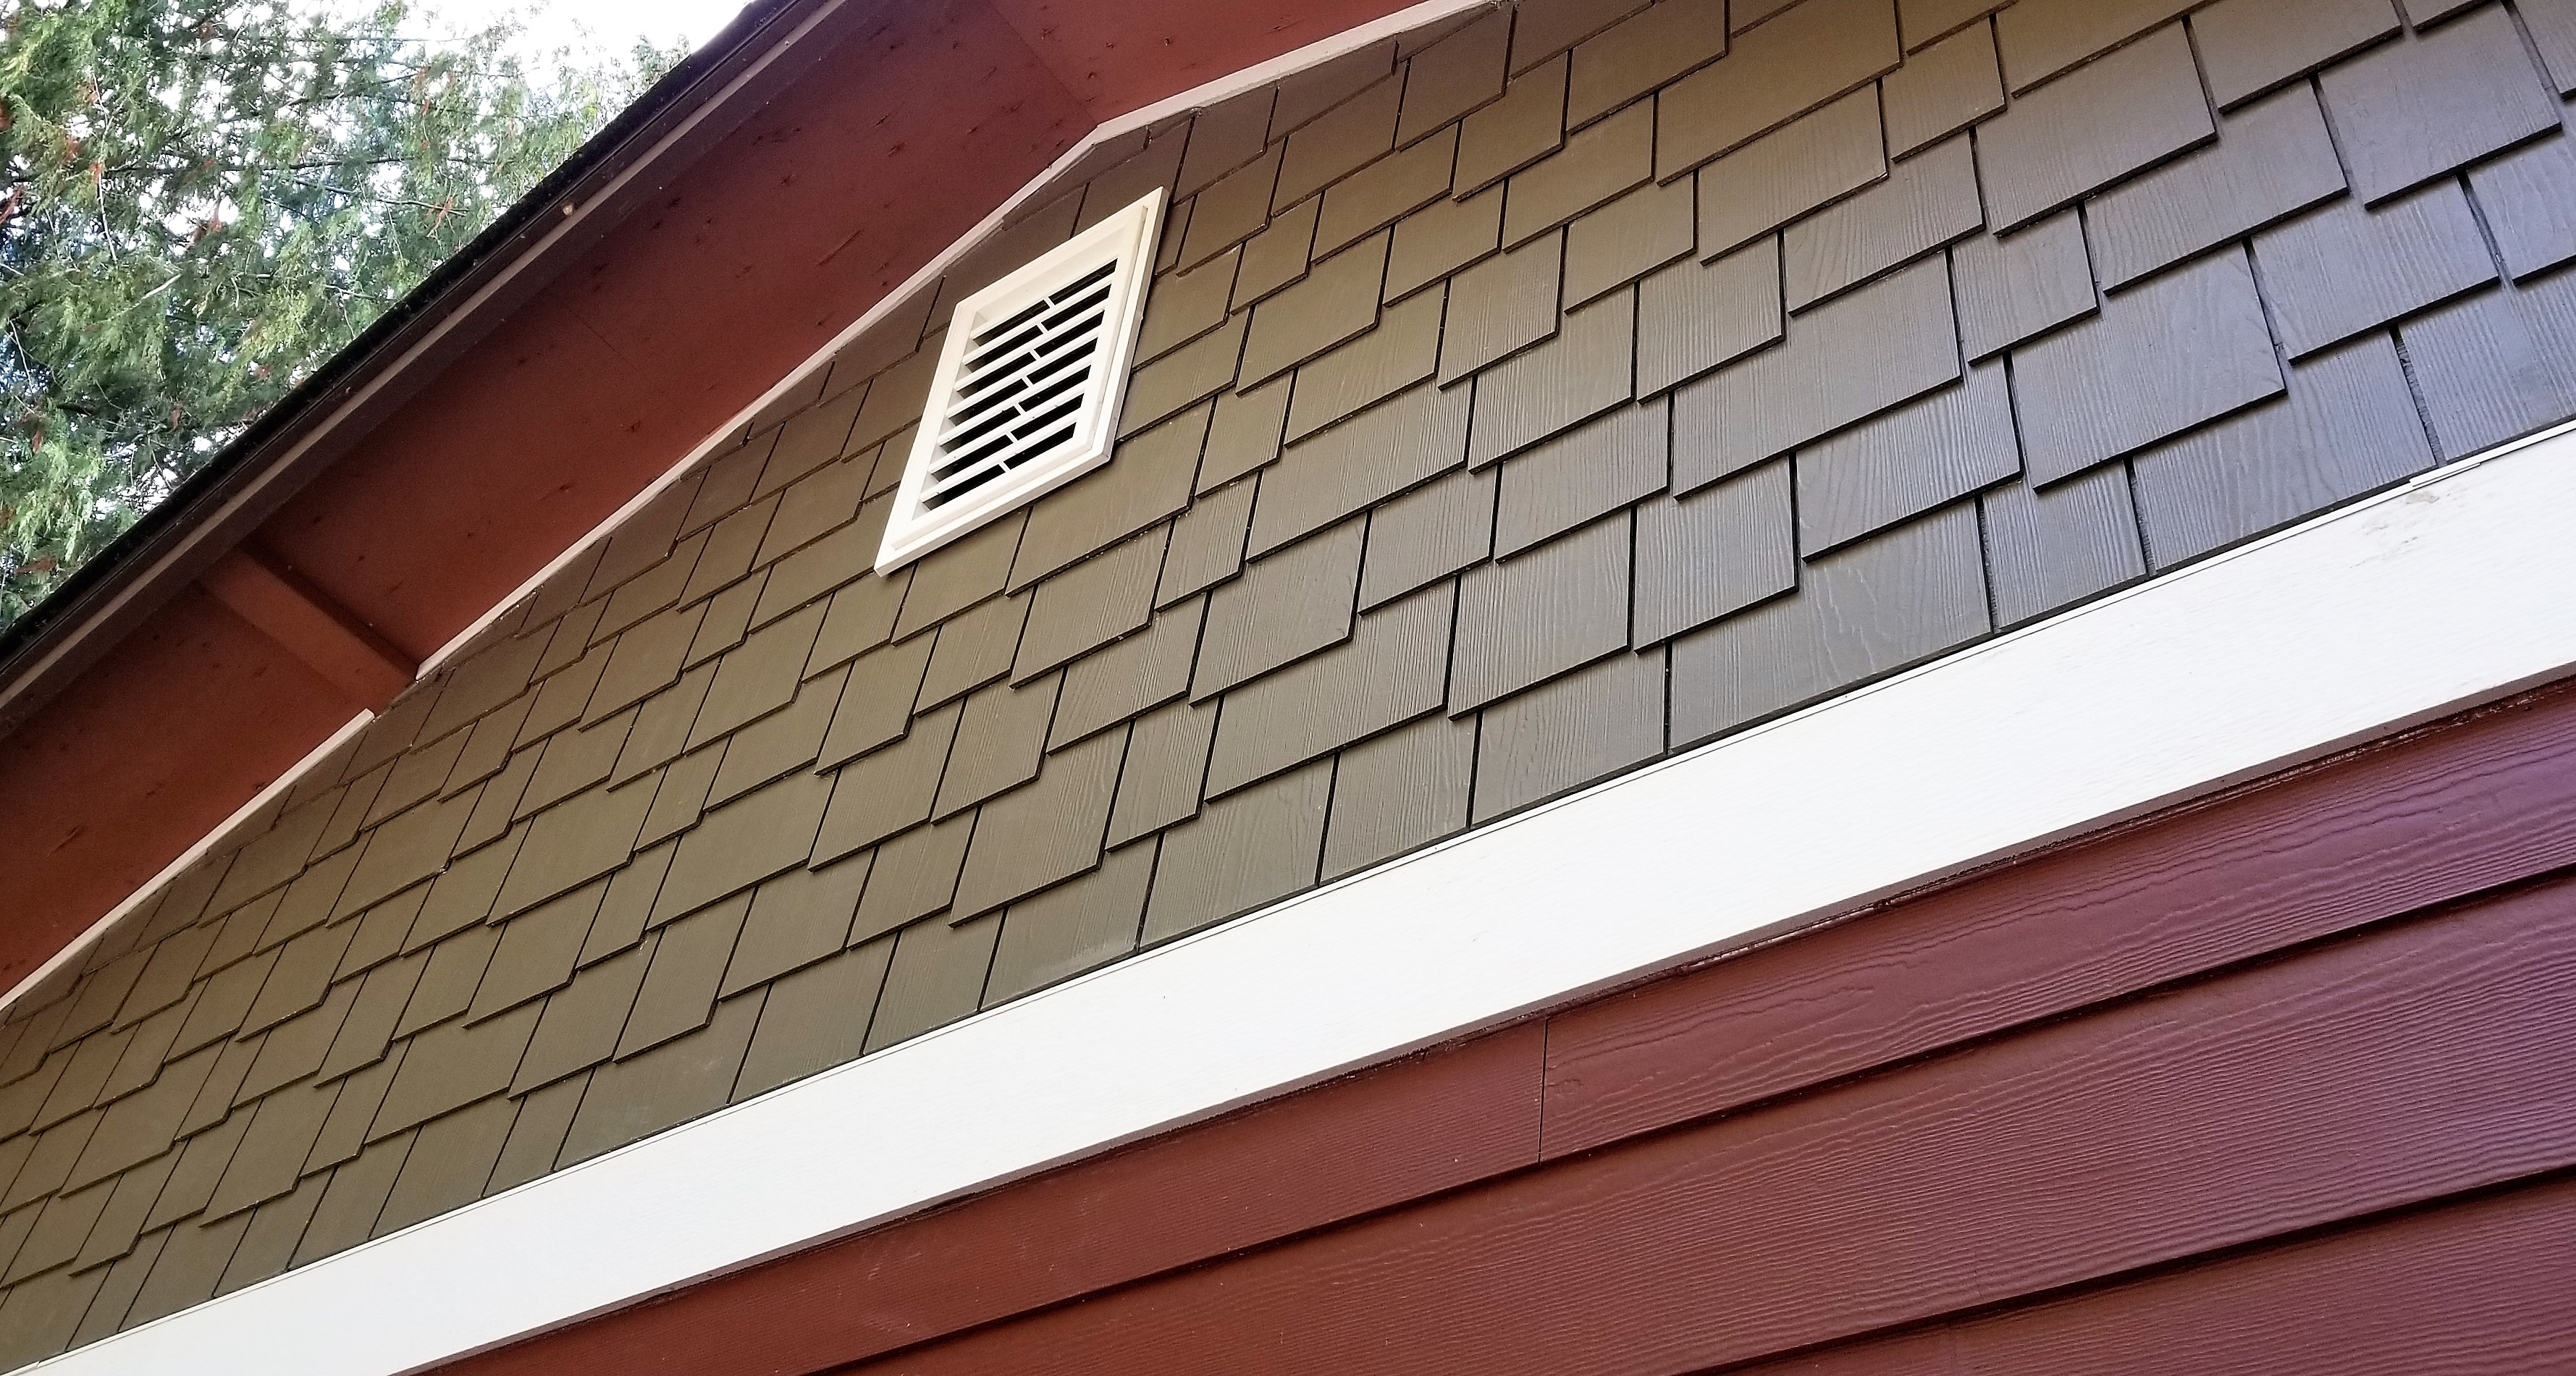 3924-1573232032-james_hardie_lap_siding_with_belly_band_and_shingles.jpg